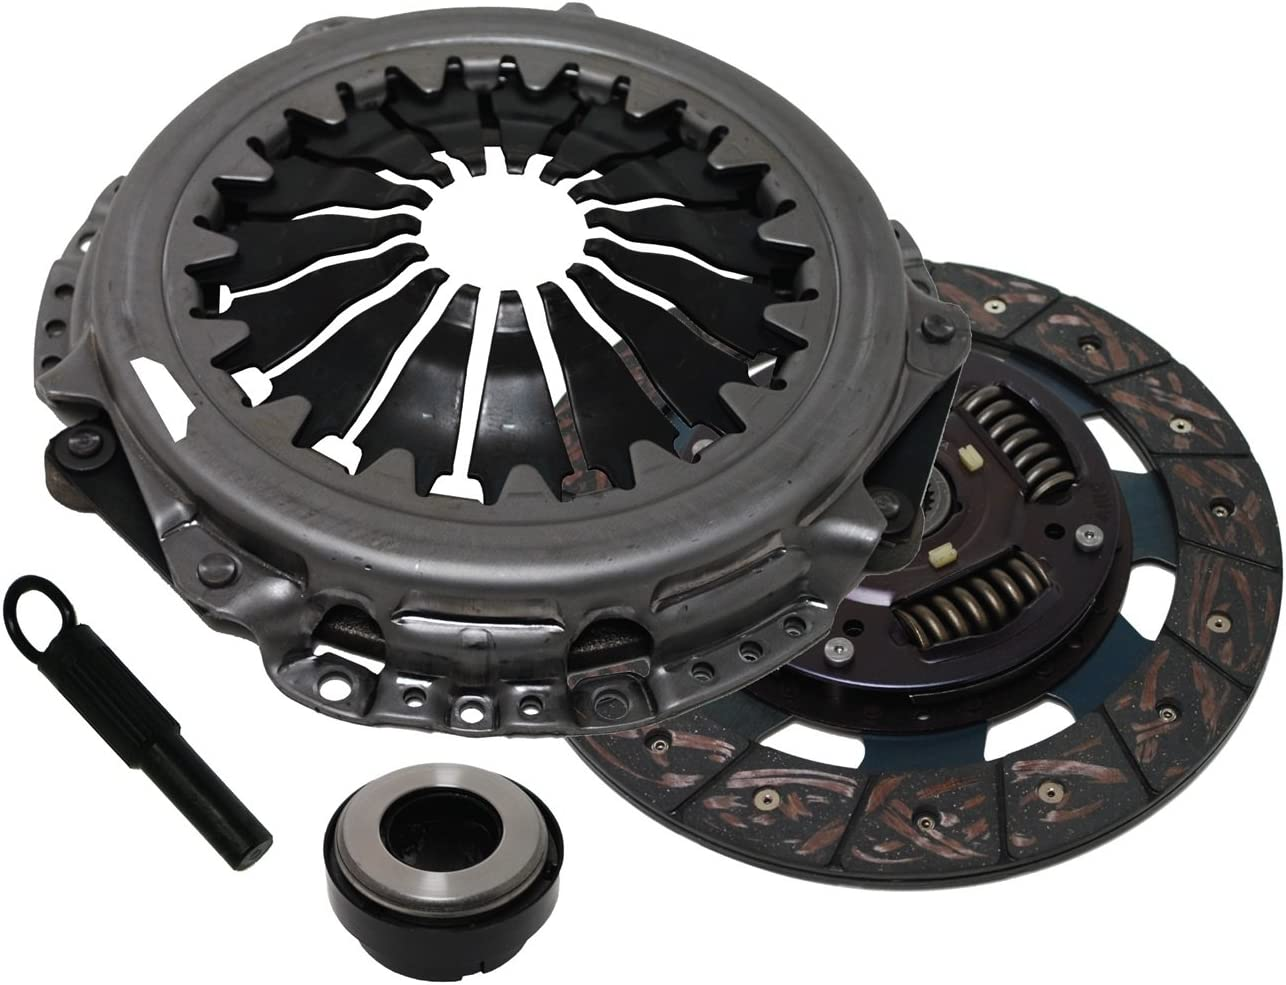 RAM Clutches New arrival 88685 Clutch Replacement Genuine Free Shipping Set